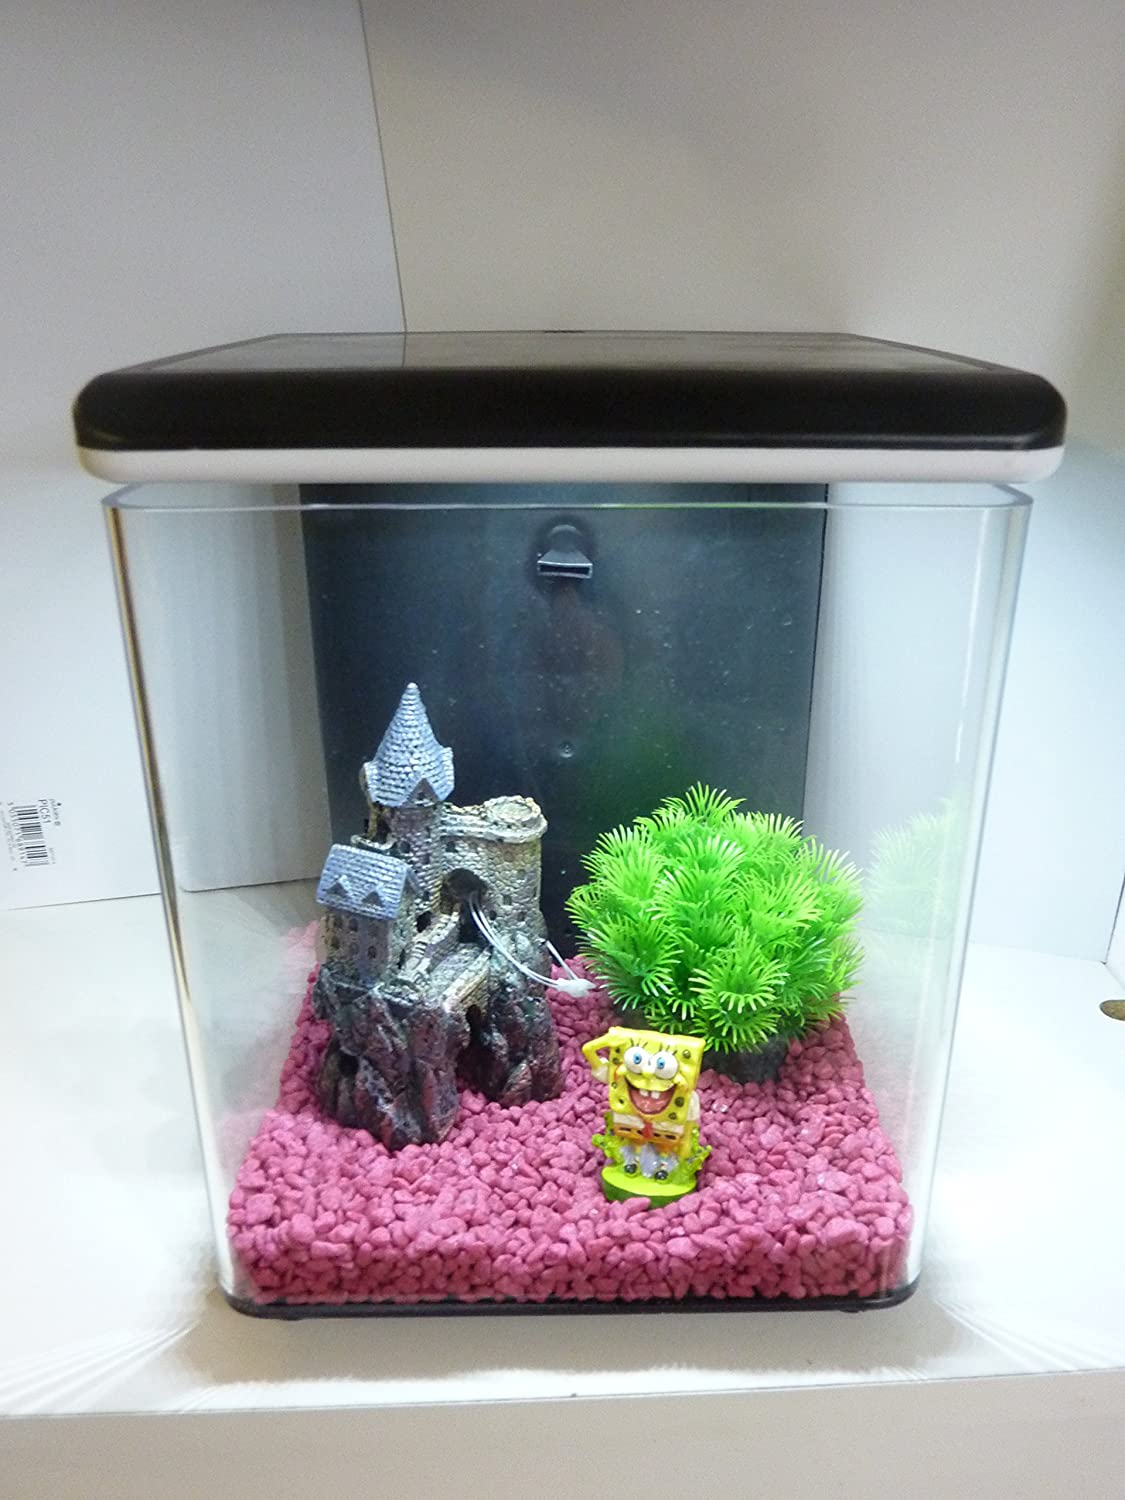 Mini 8 Fish Tank, Complete Home Aquarium, With Filter & L.E.D Light, Perfect for Minnows, Shrimp (Decor sold seperately)